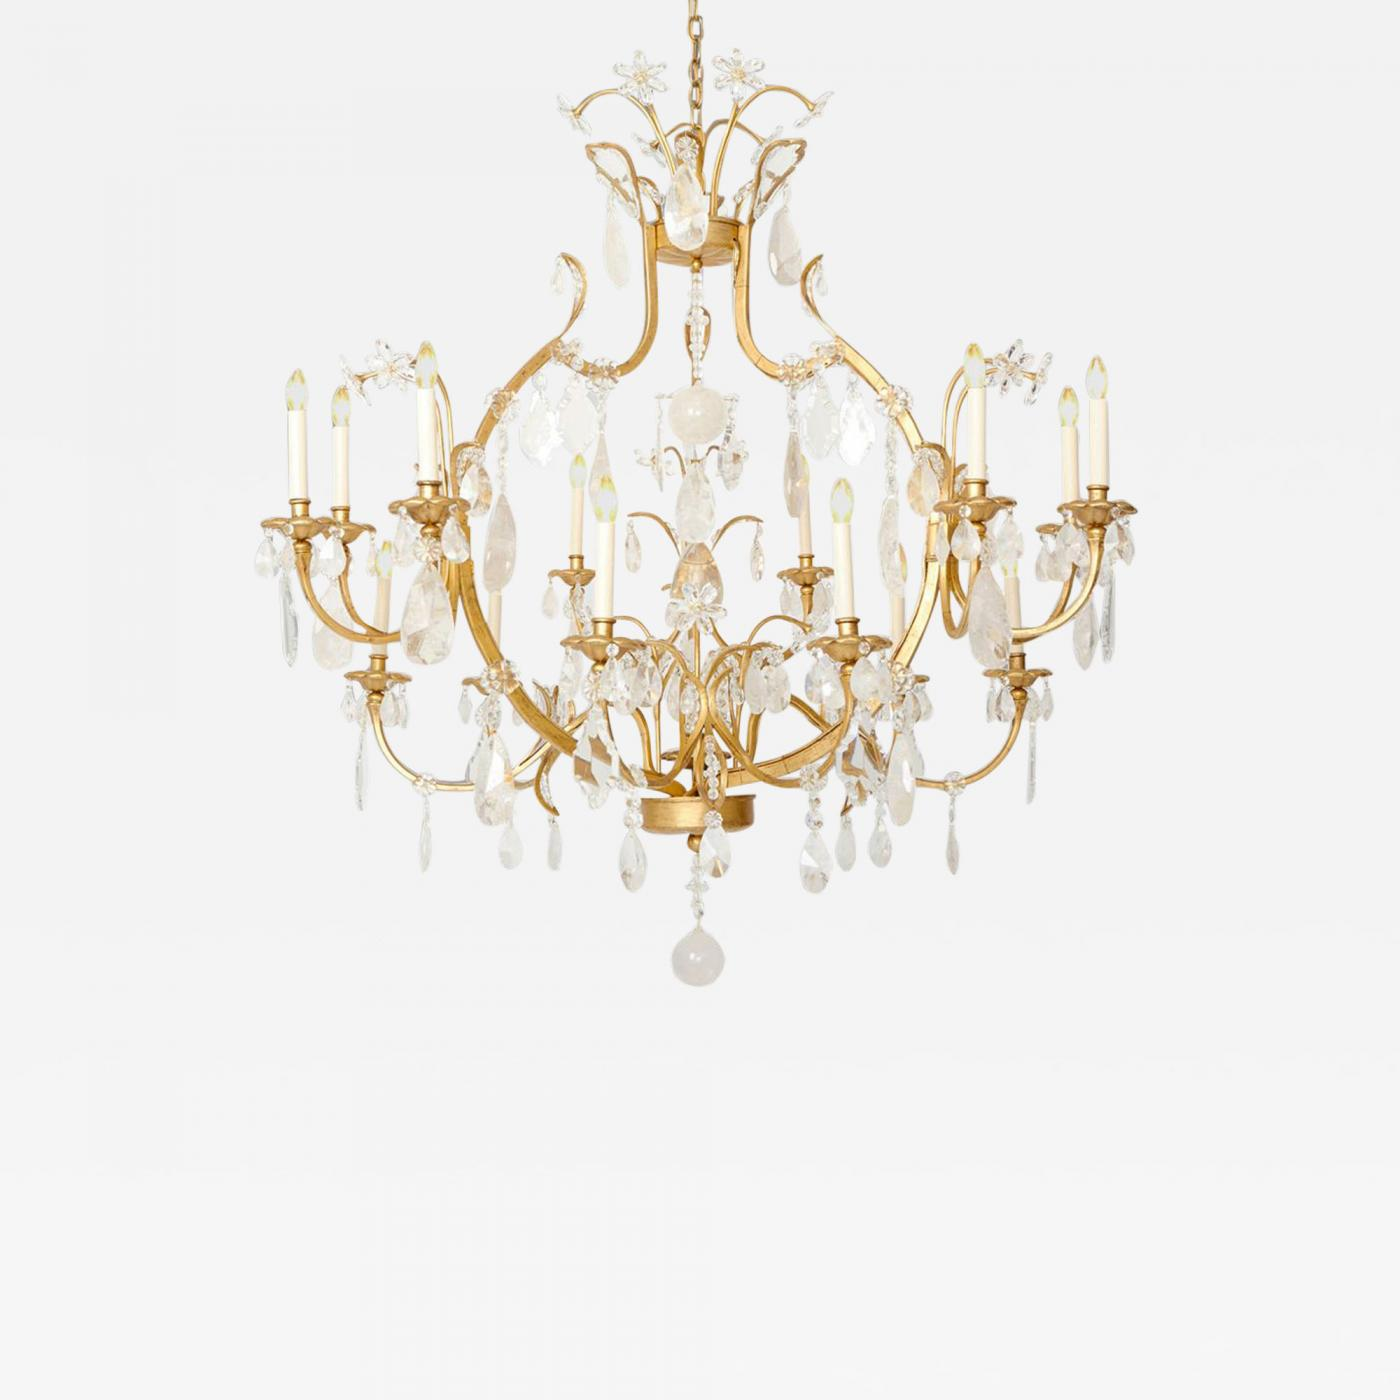 Listings / Furniture / Lighting / Chandeliers and Pendants · The Rochambeau Chandelier  sc 1 st  Incollect & The Rochambeau Chandelier azcodes.com